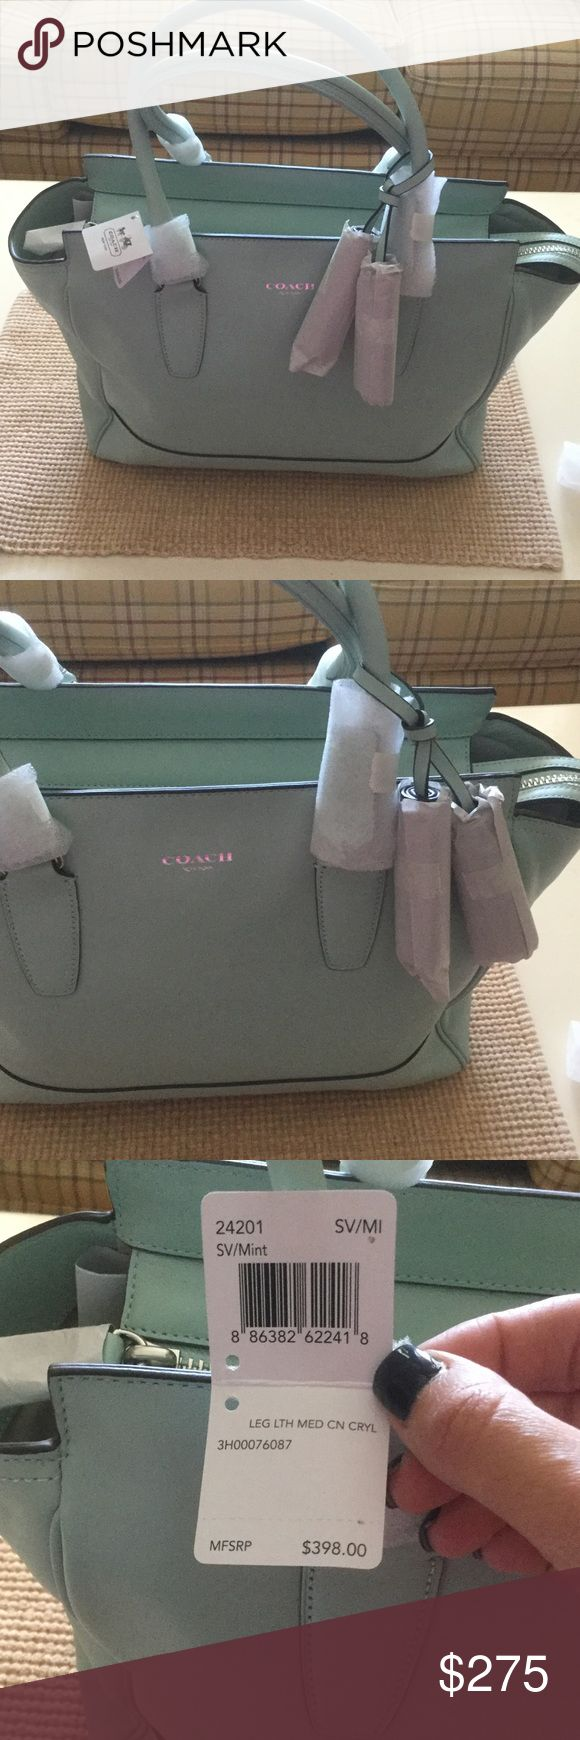 "BNWT Coach Legacy Leather Carry All Brand New with Tags Mint Coach Legacy Leather Carry All! Gorgeous and professional bag with a subdued pop of color! Dimensions are as follows: 13"" L, 11"" H, 4.5"" W and a 6.5"" handle drop.  Grab this NOW!! Coach Bags Totes"